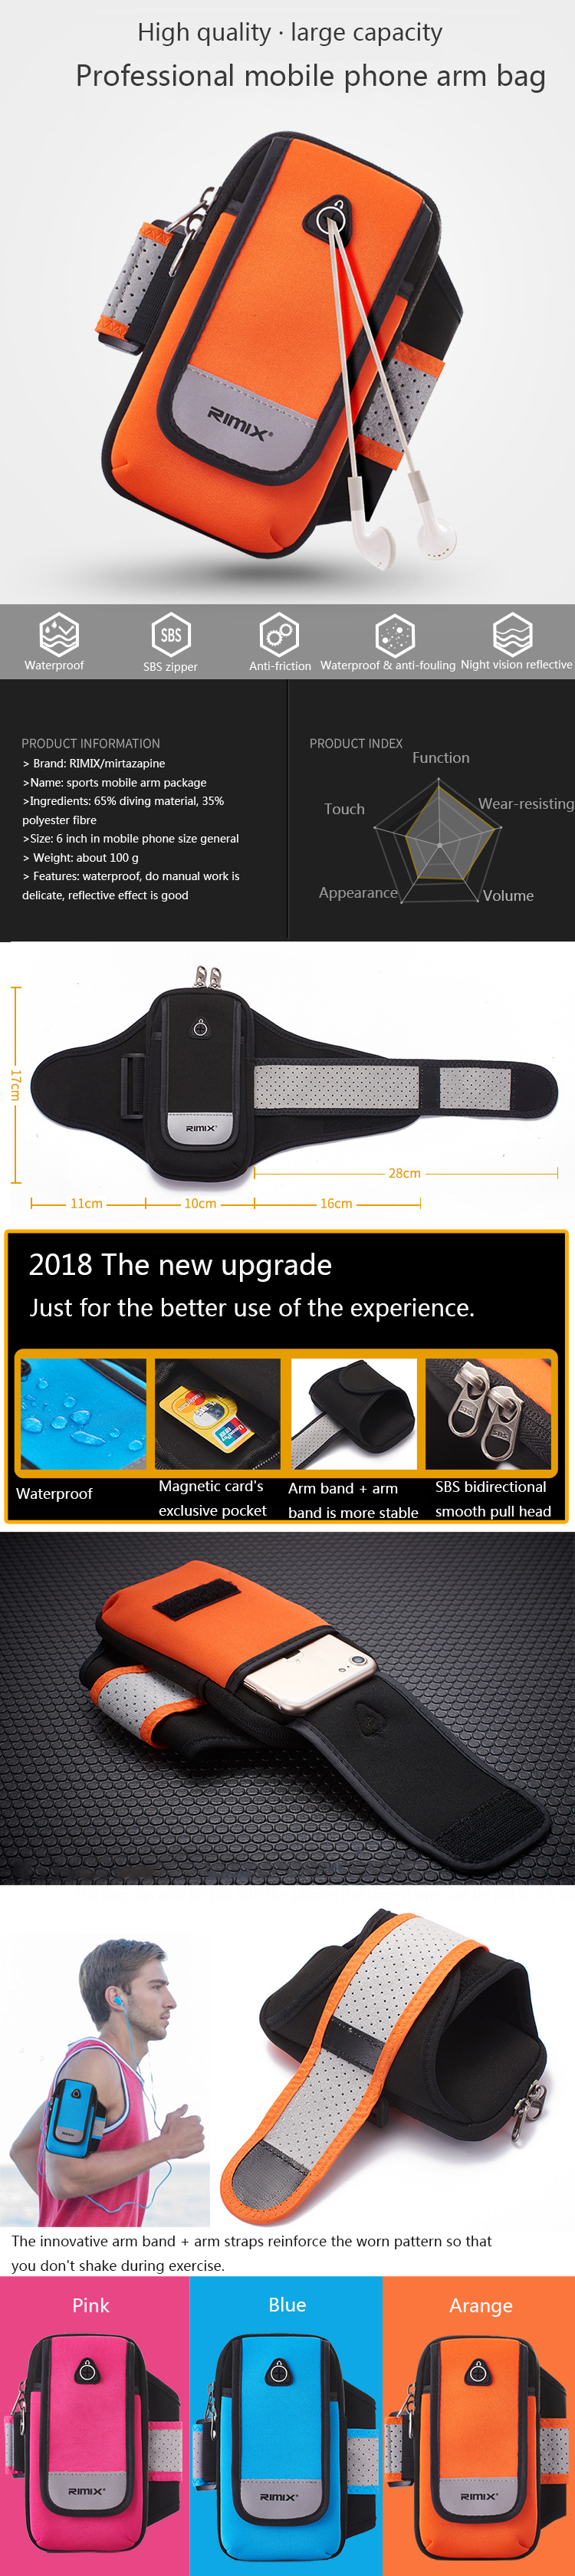 TQ602 Male And Female Running Mobile Arm Bag Running Equipment Mobile Phone Bag Fitness Arm Sleeve